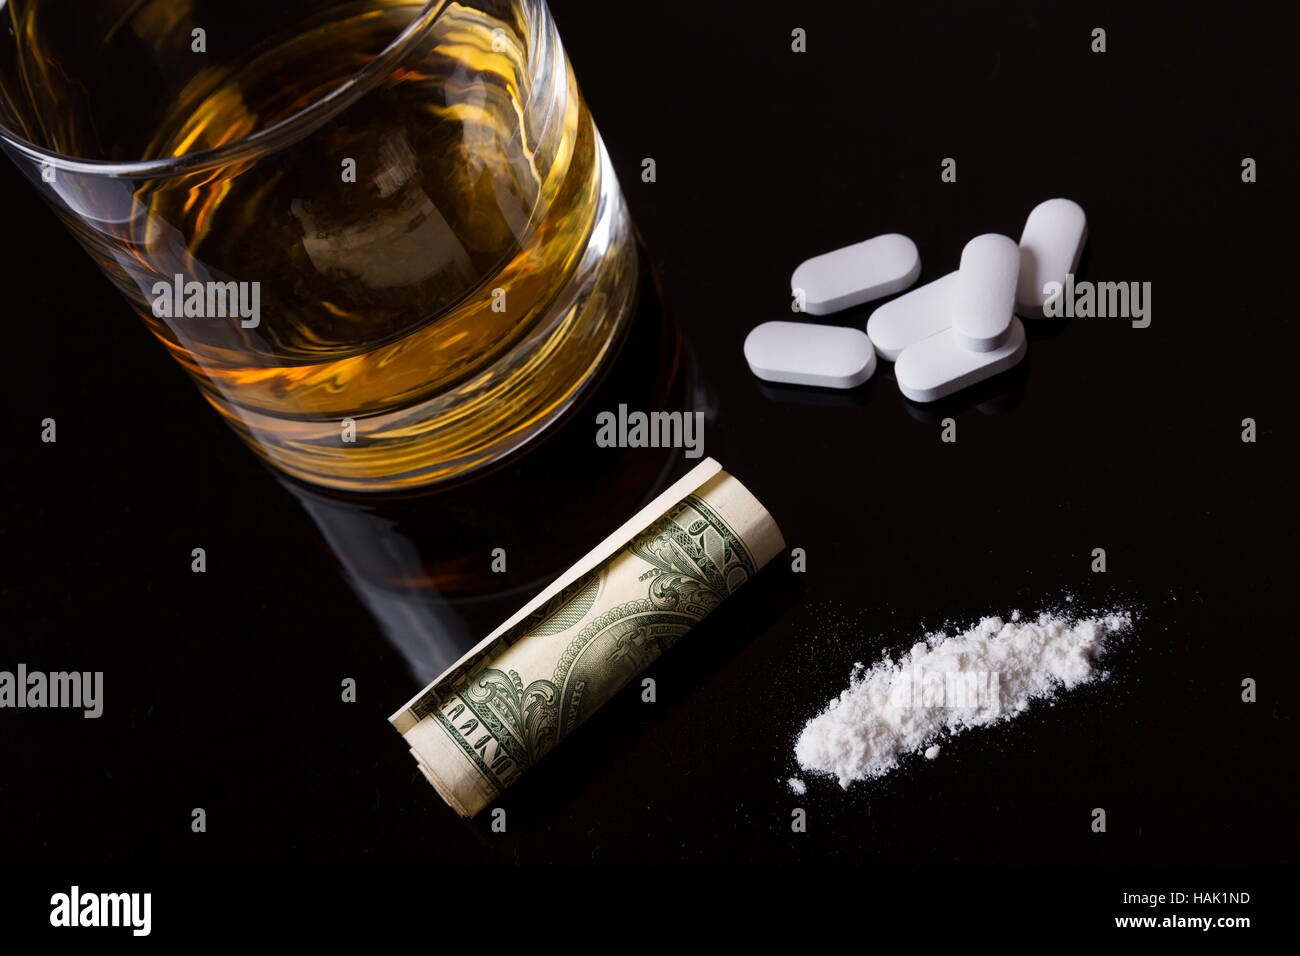 narcotics addiction - alcohol, drugs and cocaine - Stock Image